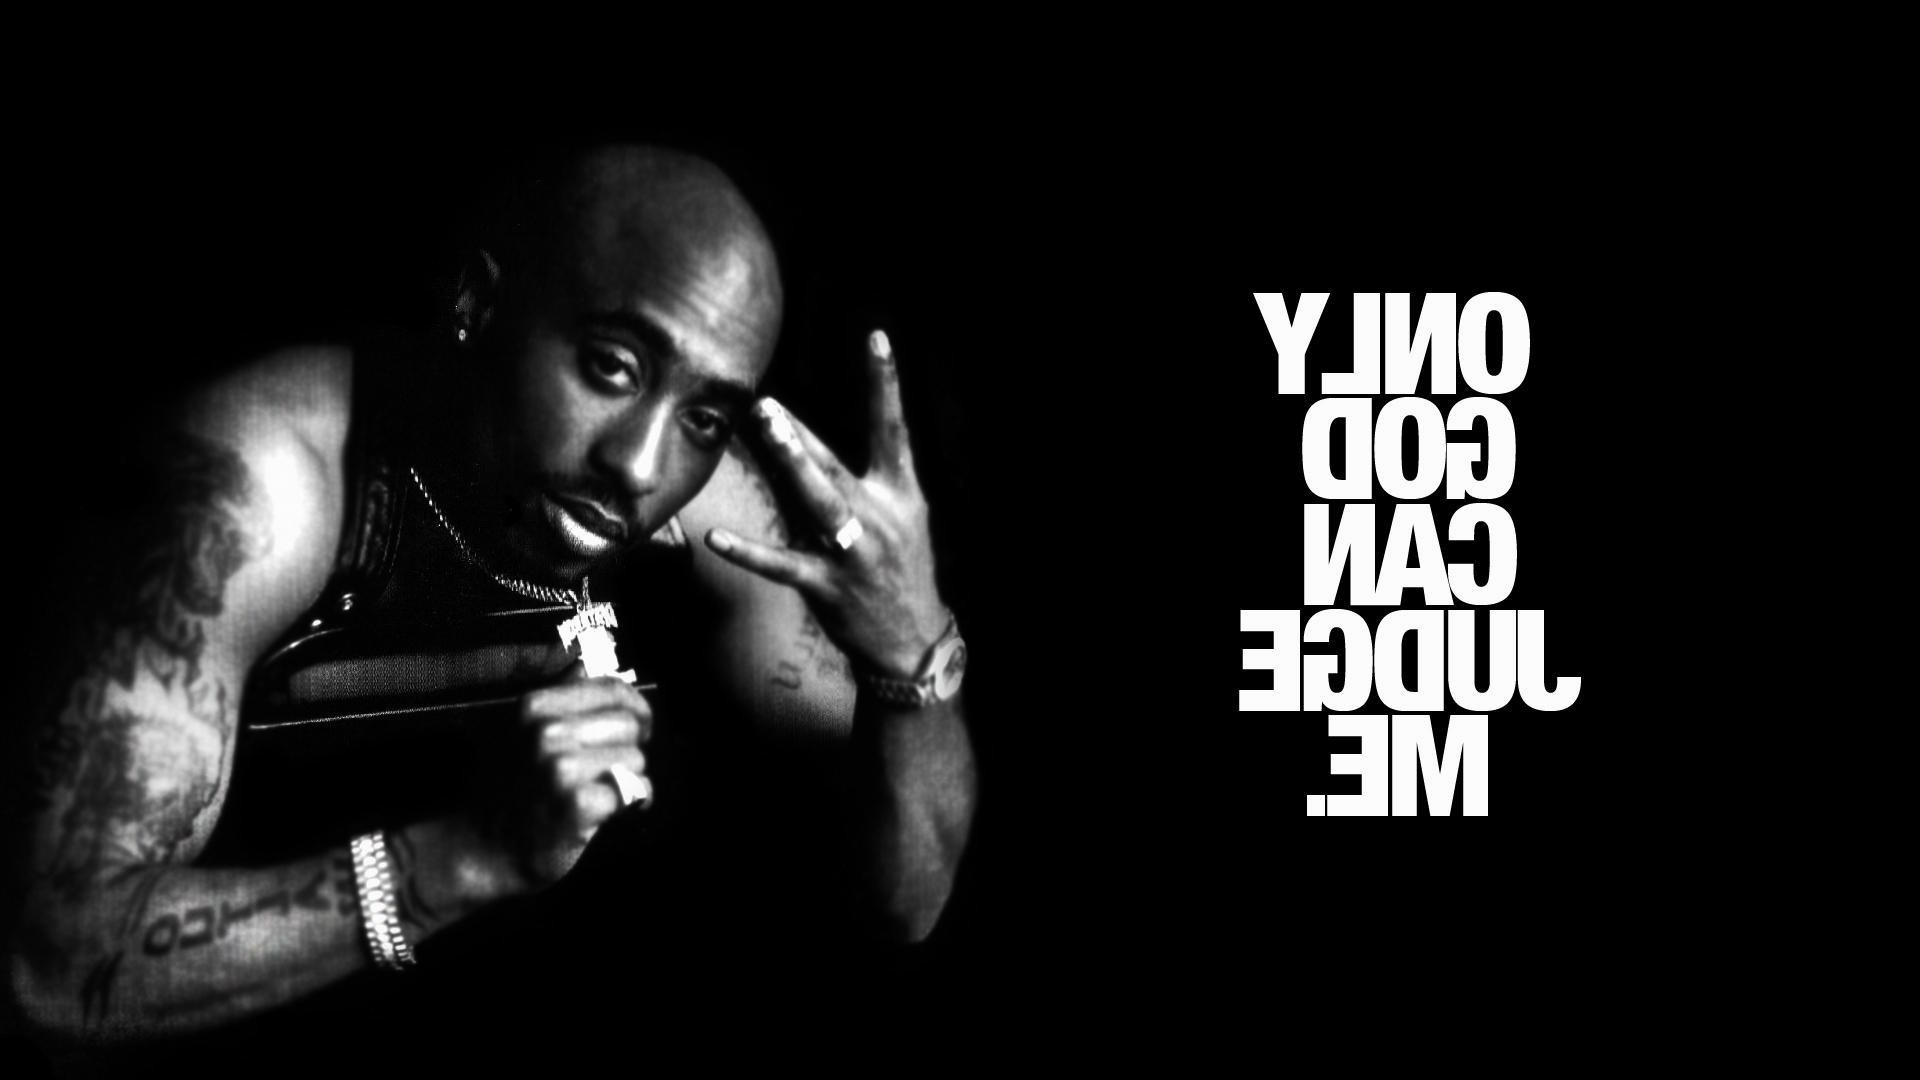 2pac backgrounds 183��